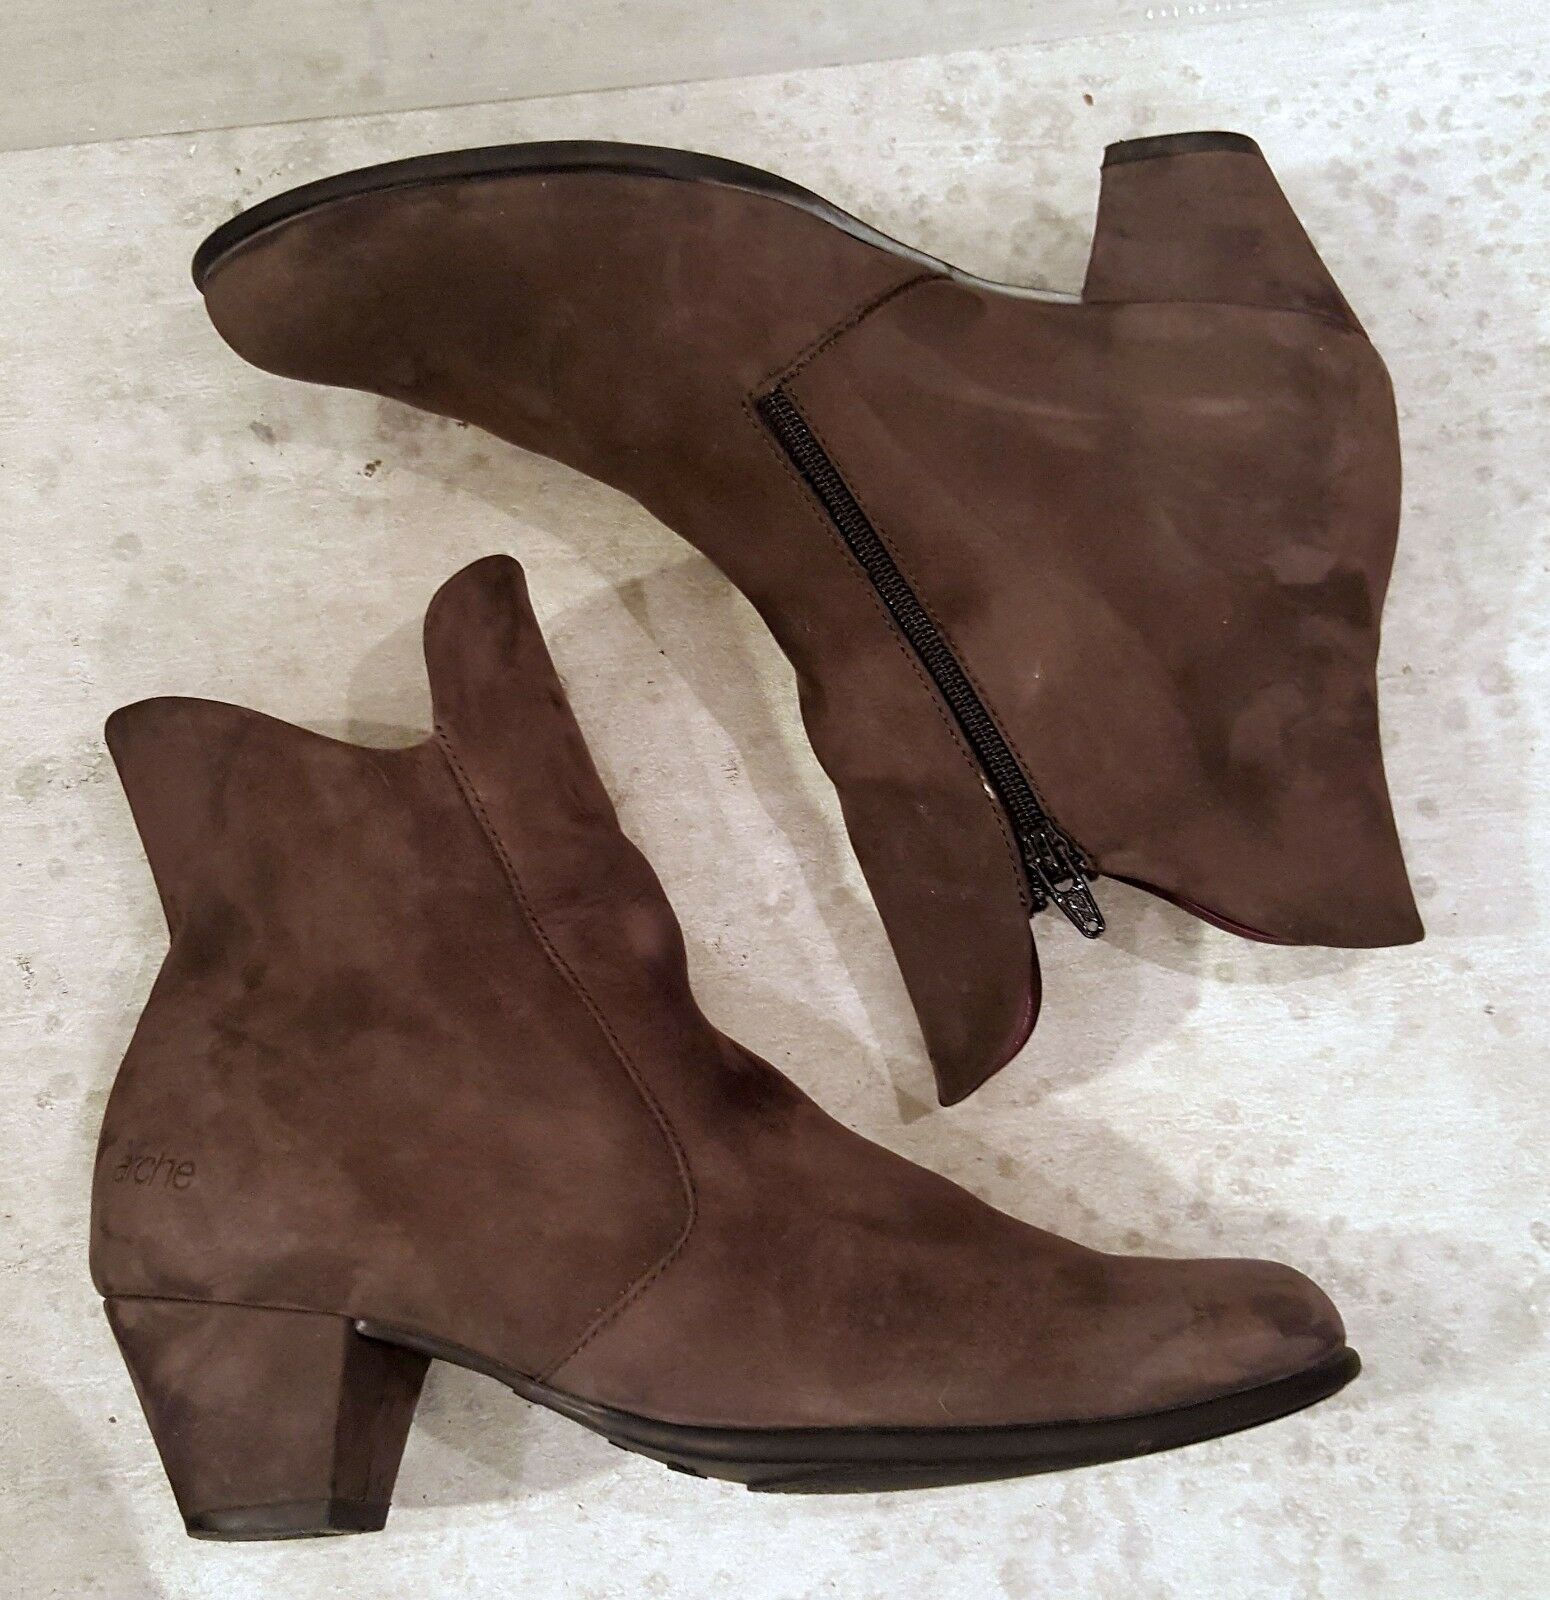 Arche Muren ankle boots size size size 36 us size 6 658612